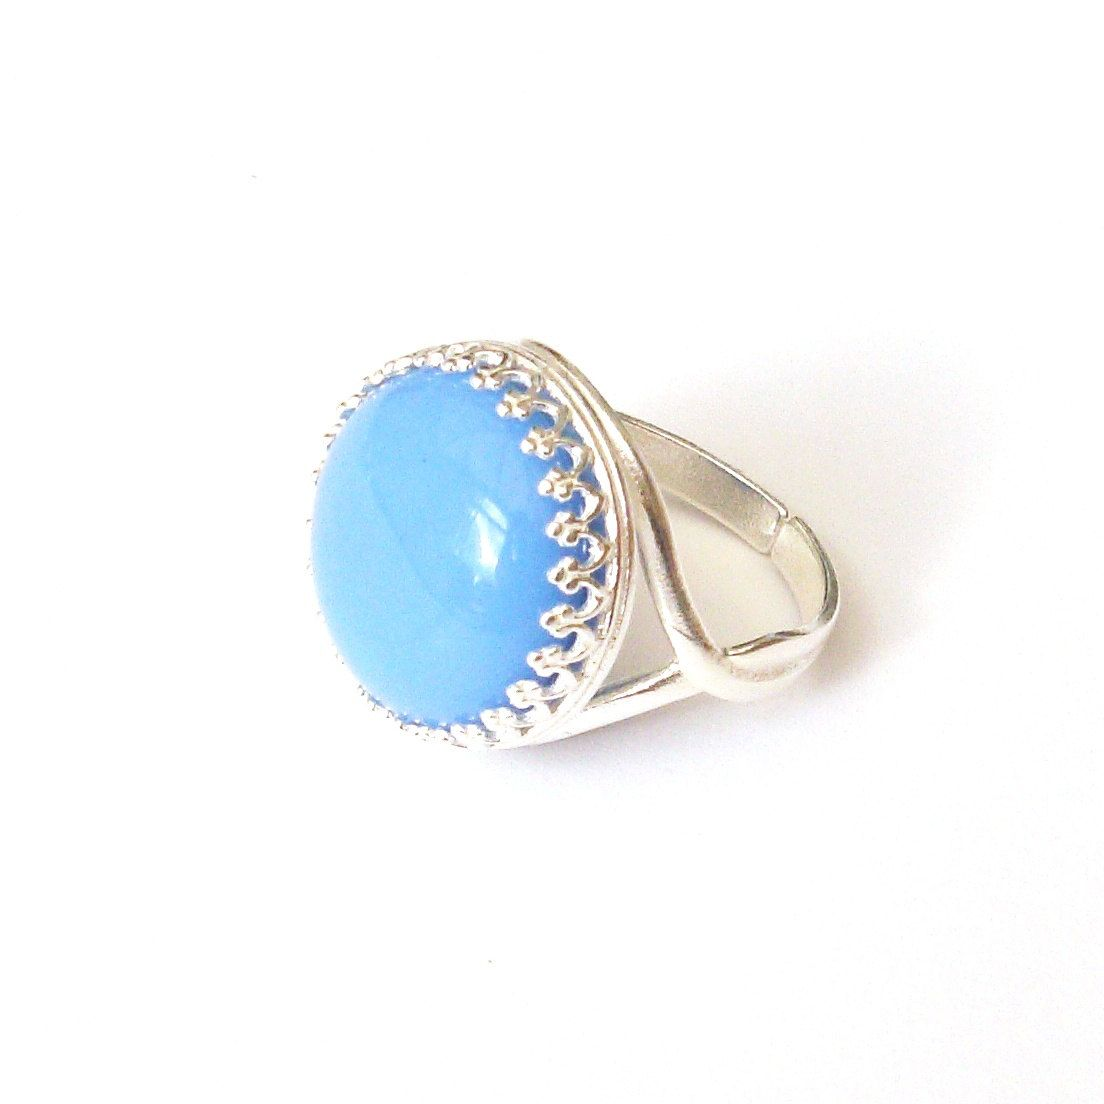 Light Cornflower Blue Glass Ring in Sterling Silver by TemporalFlux on Etsy